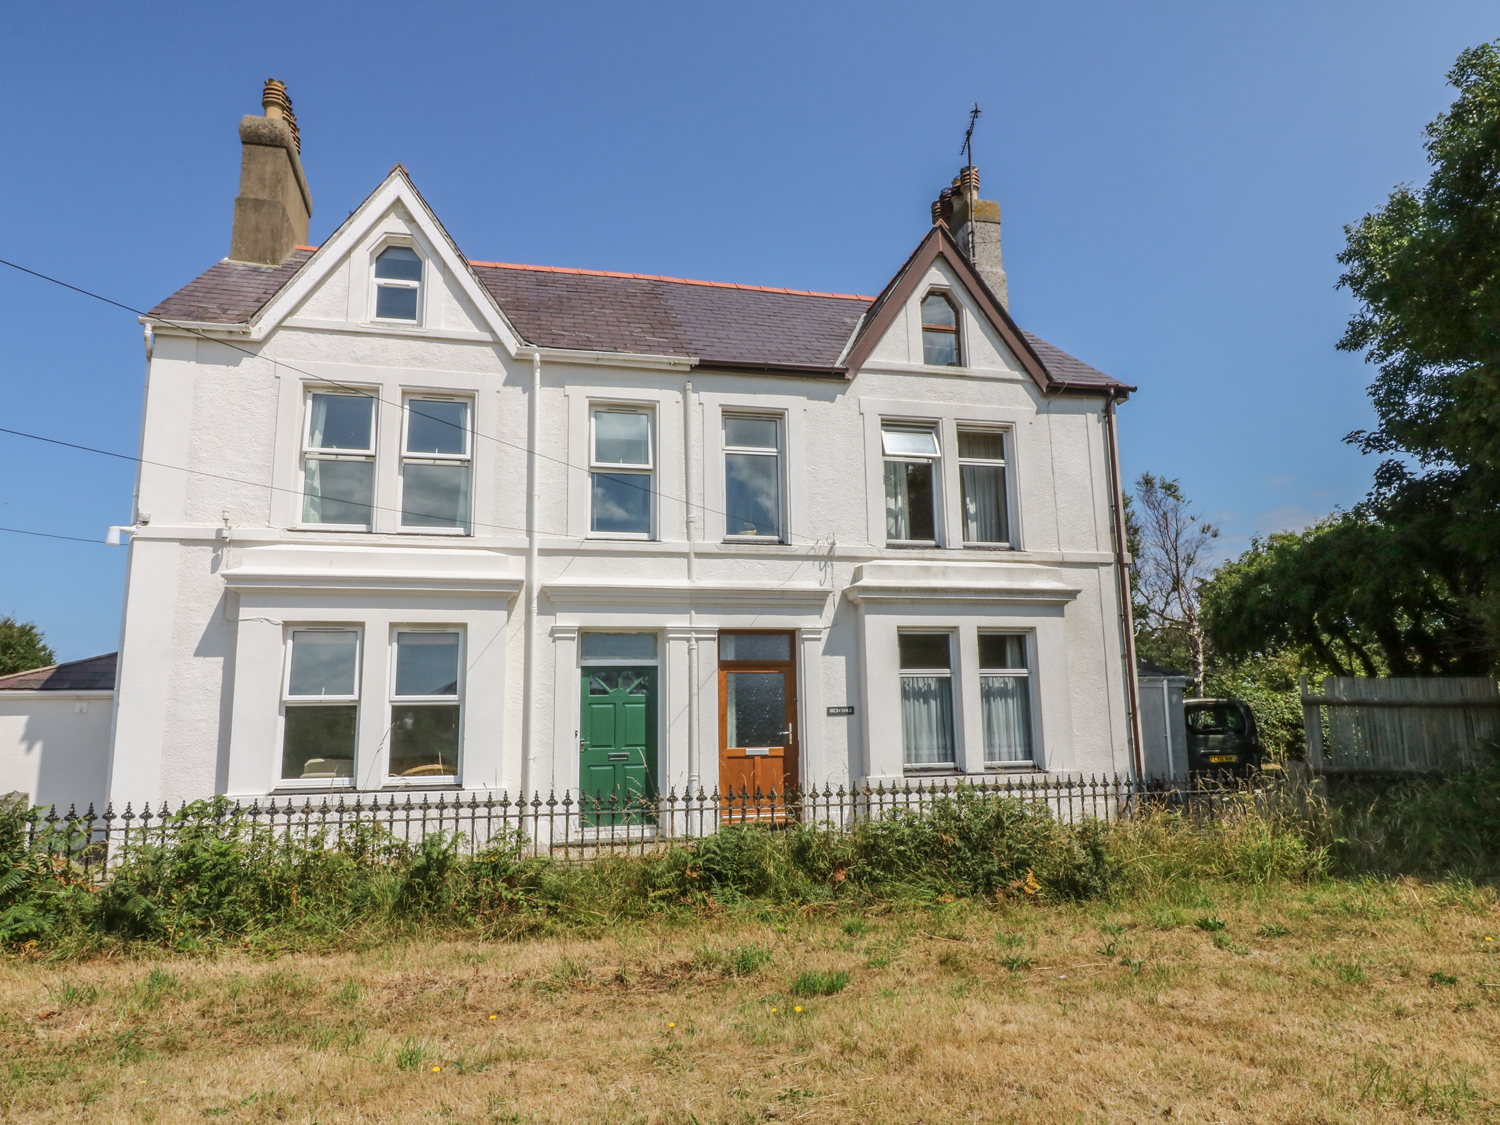 5 bedroom Cottage for rent in Morfa Nefyn